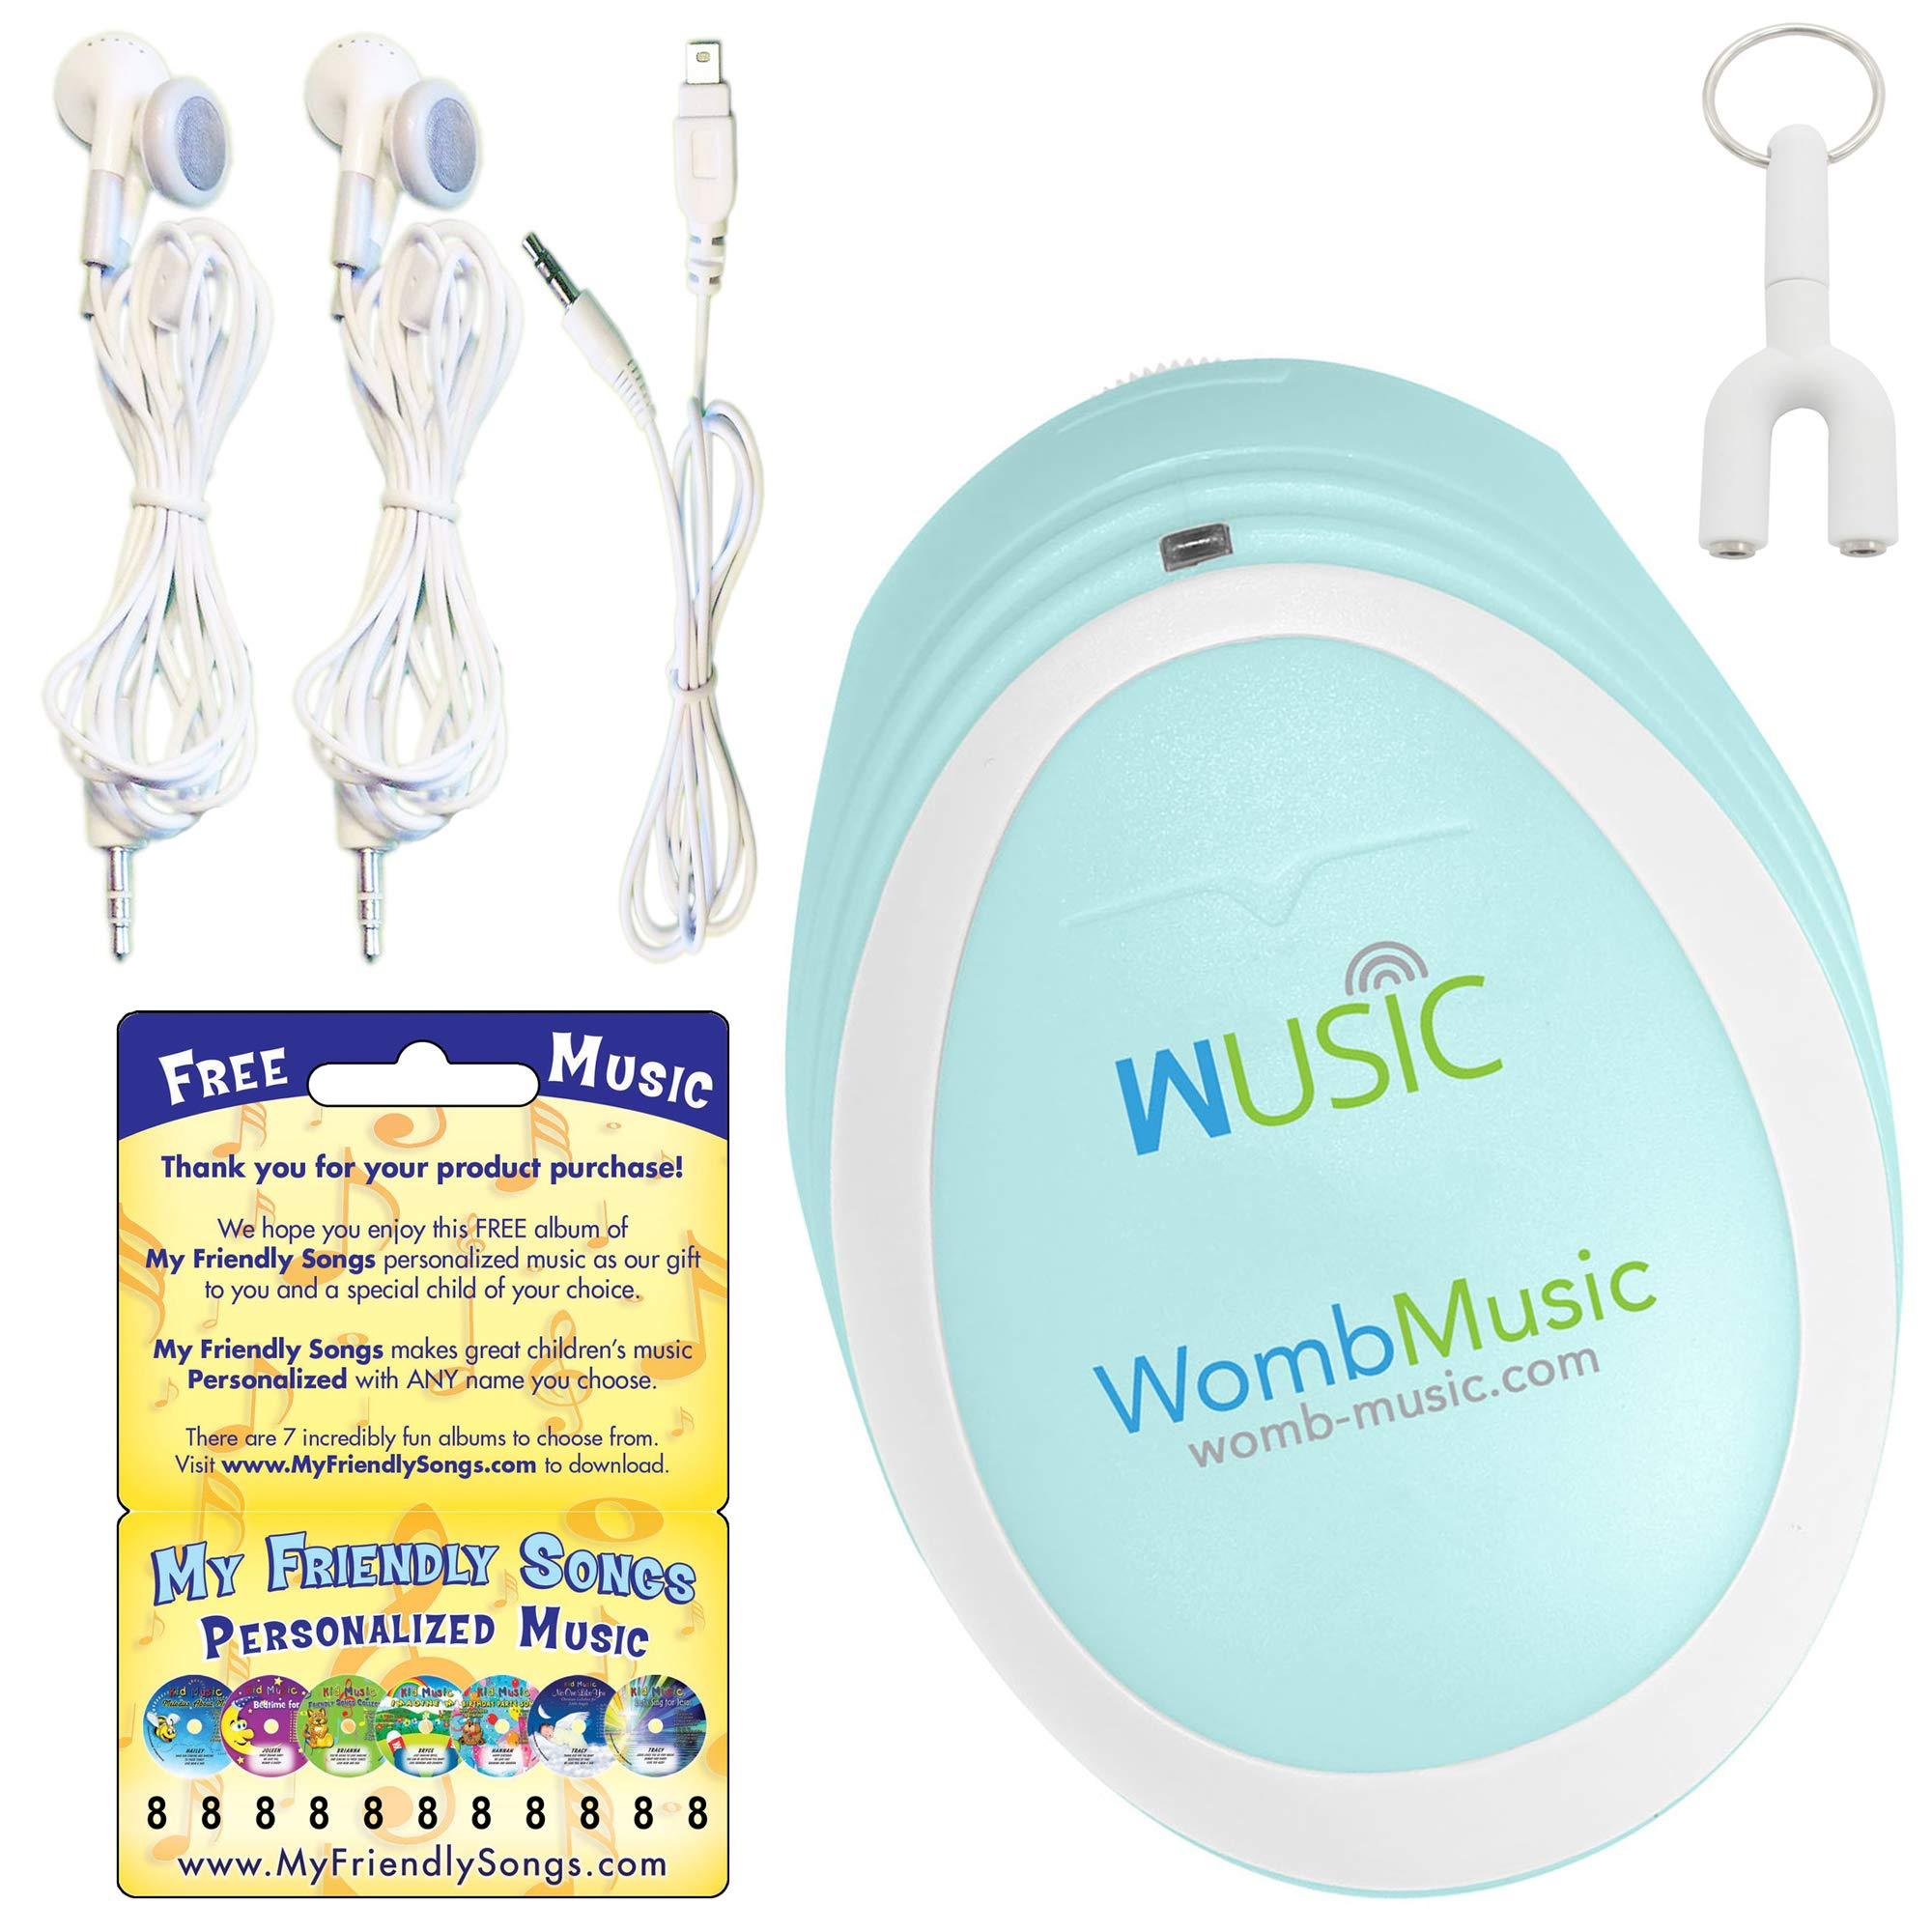 Listen to The Sounds Your Baby Makes with The Womb Music by Wusic - It's Like Music to a Mommy's Ears!